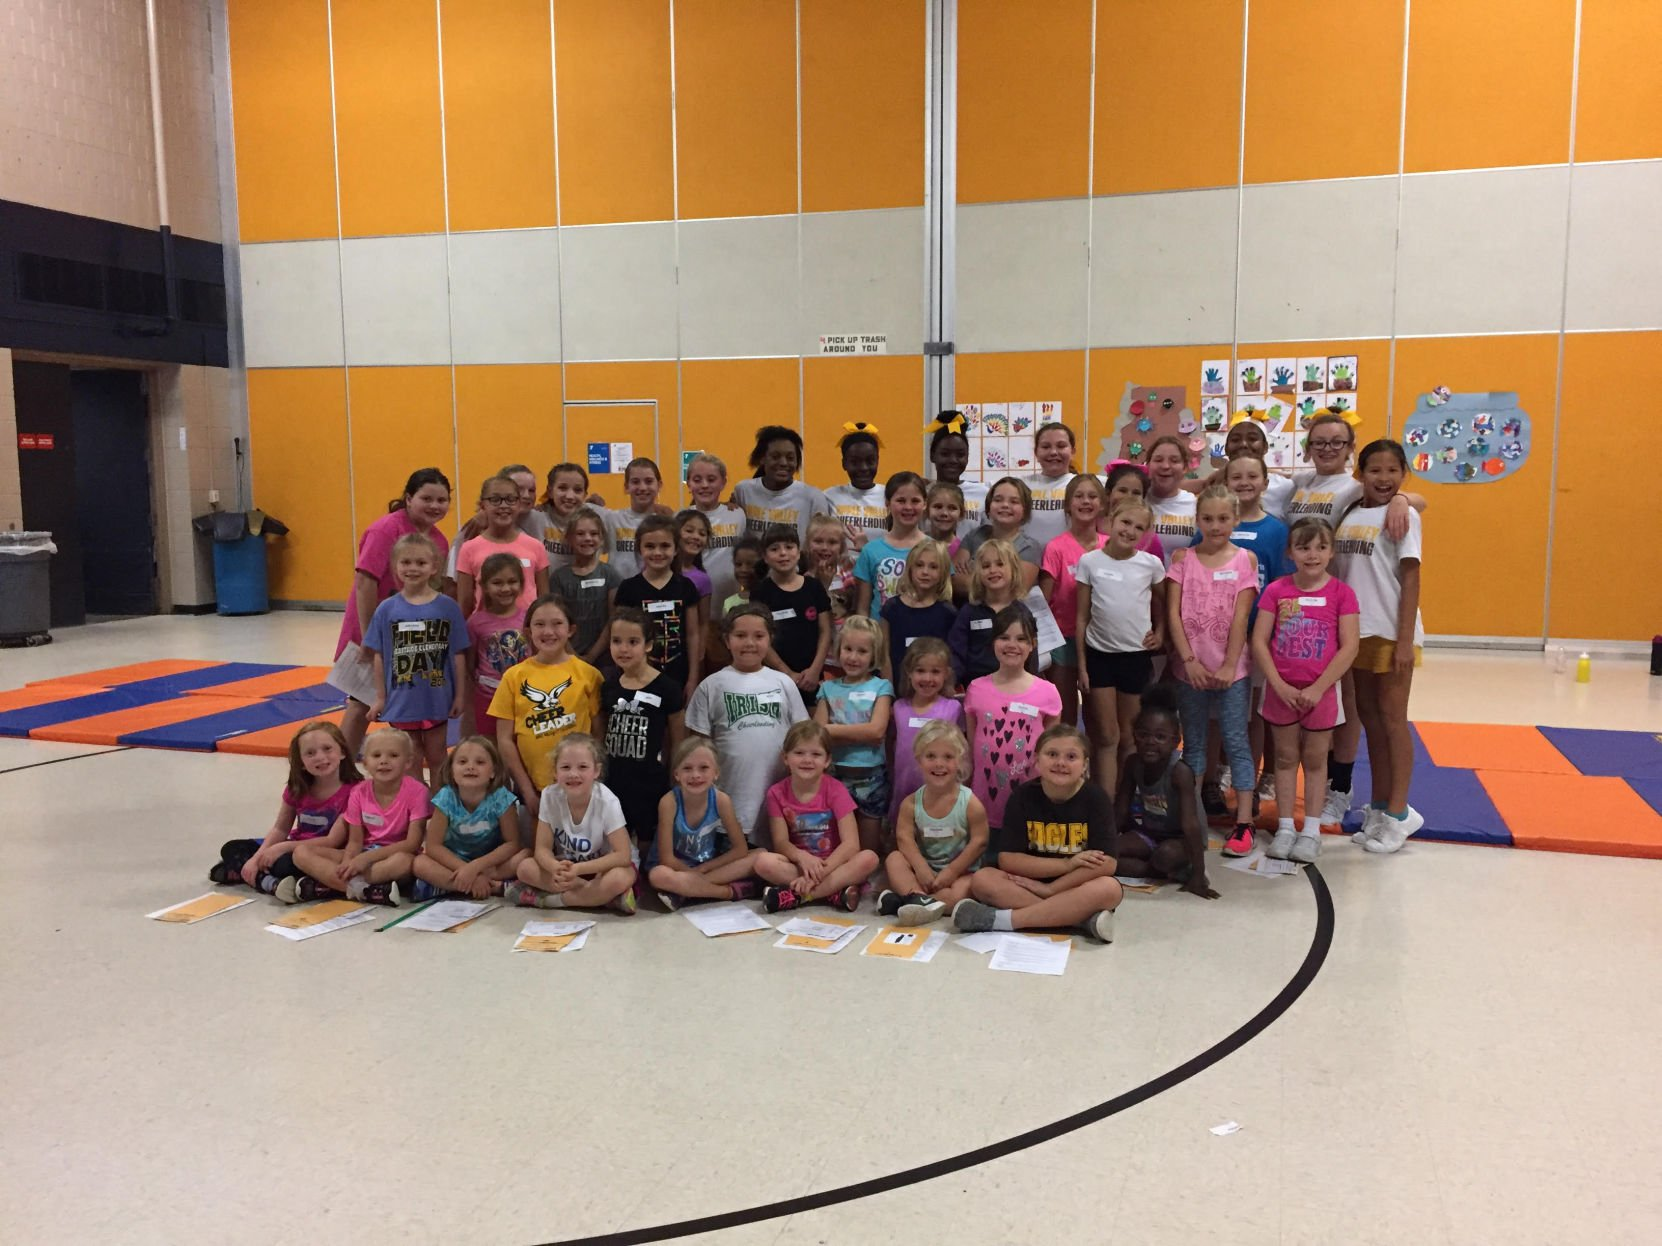 Apple Valley elementary cheer program participation triples